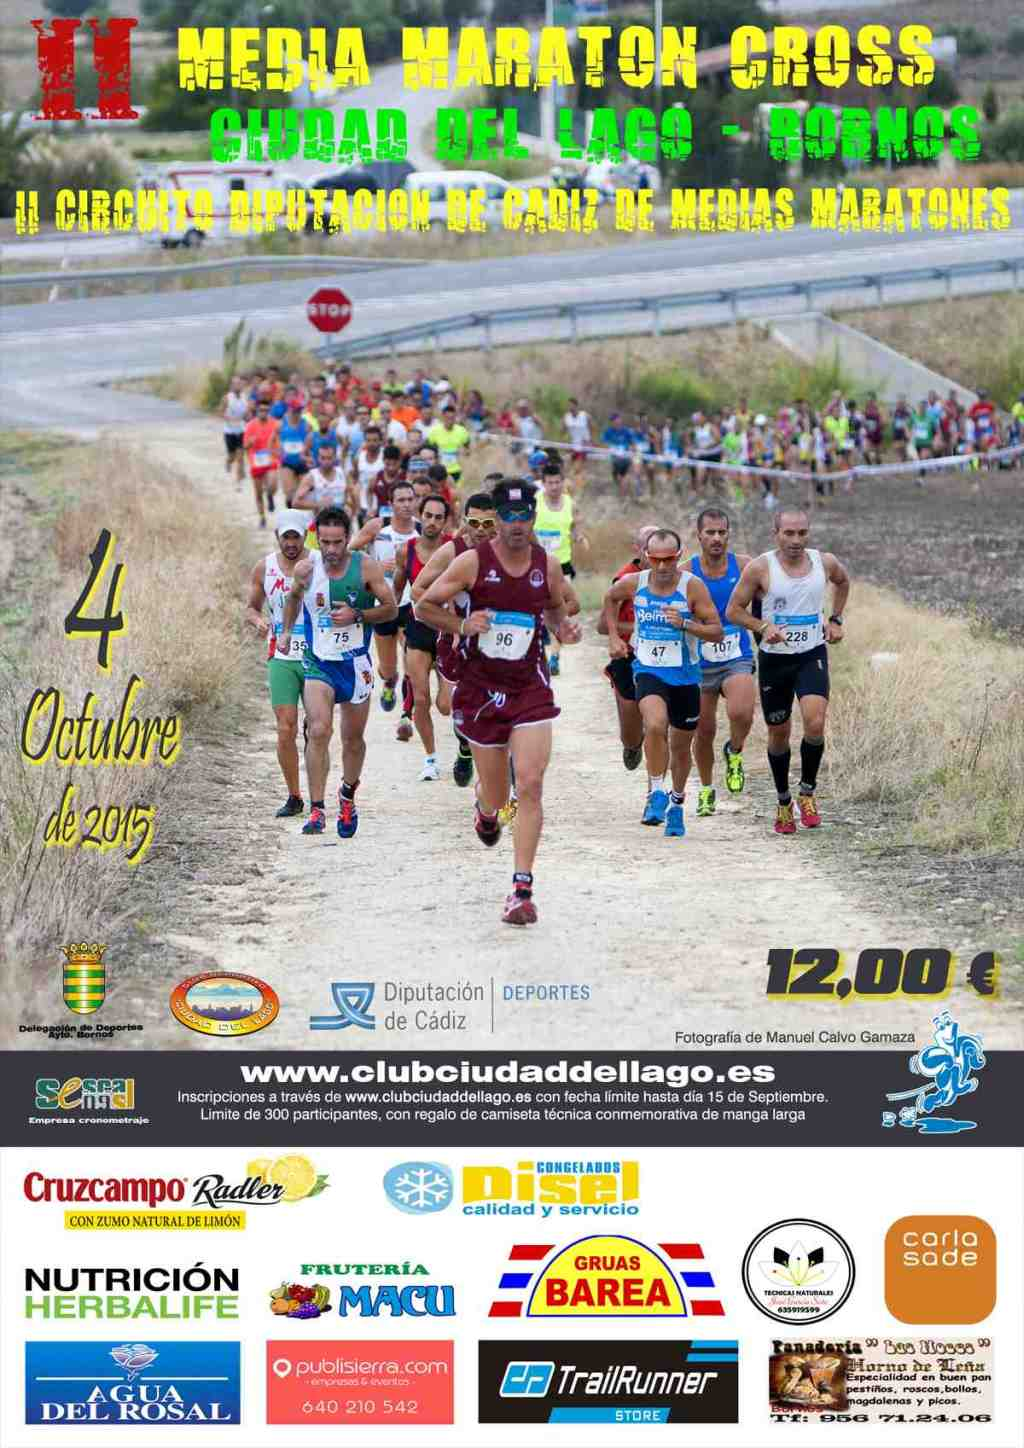 II Media Maratón Cross CIUDAD DEL LAGO